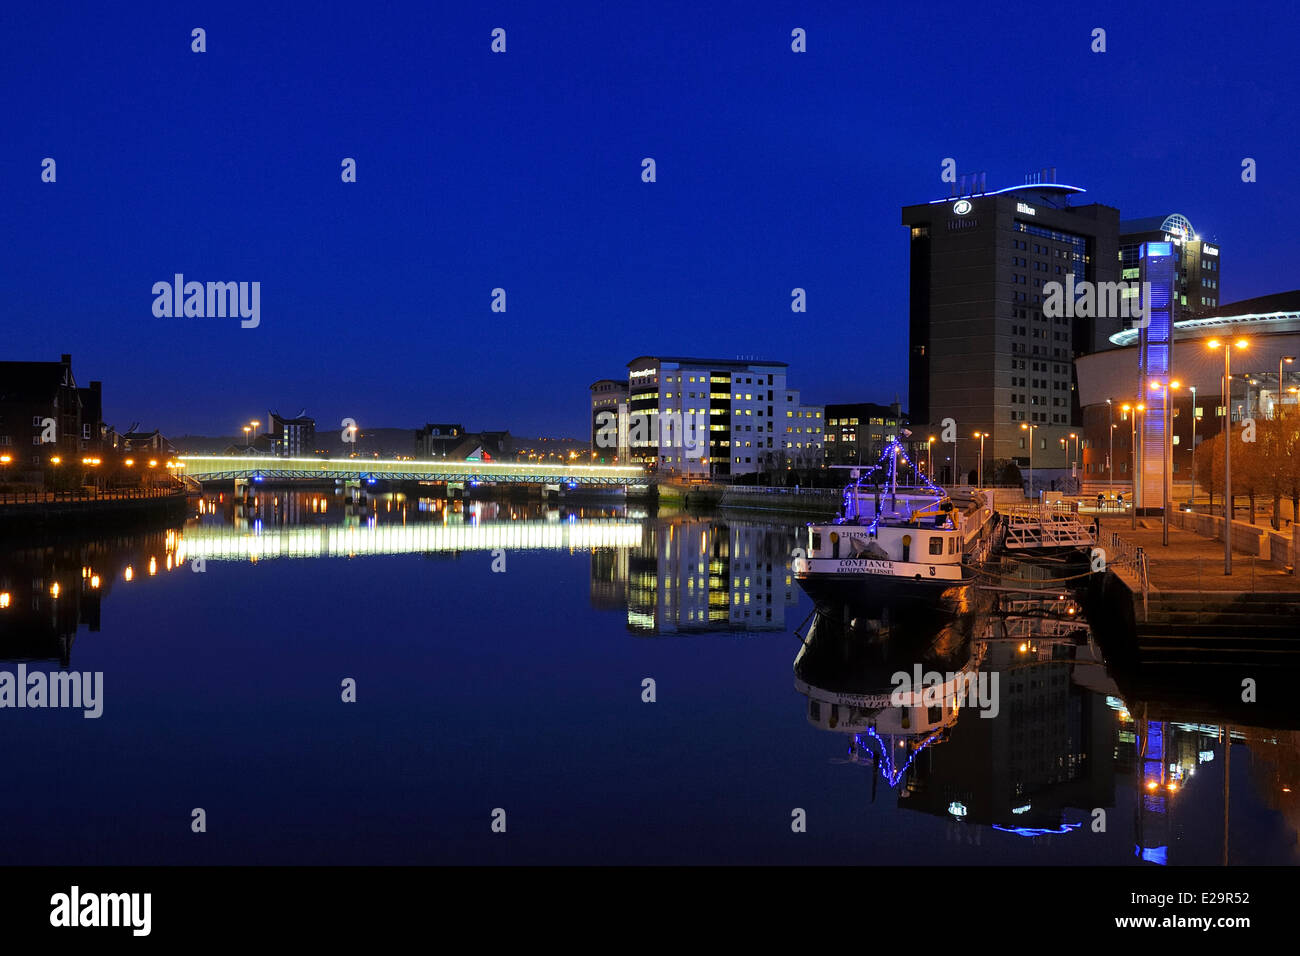 United Kingdom, Northern Ireland, Belfast, the waterfront on the Lagan riverside - Stock Image